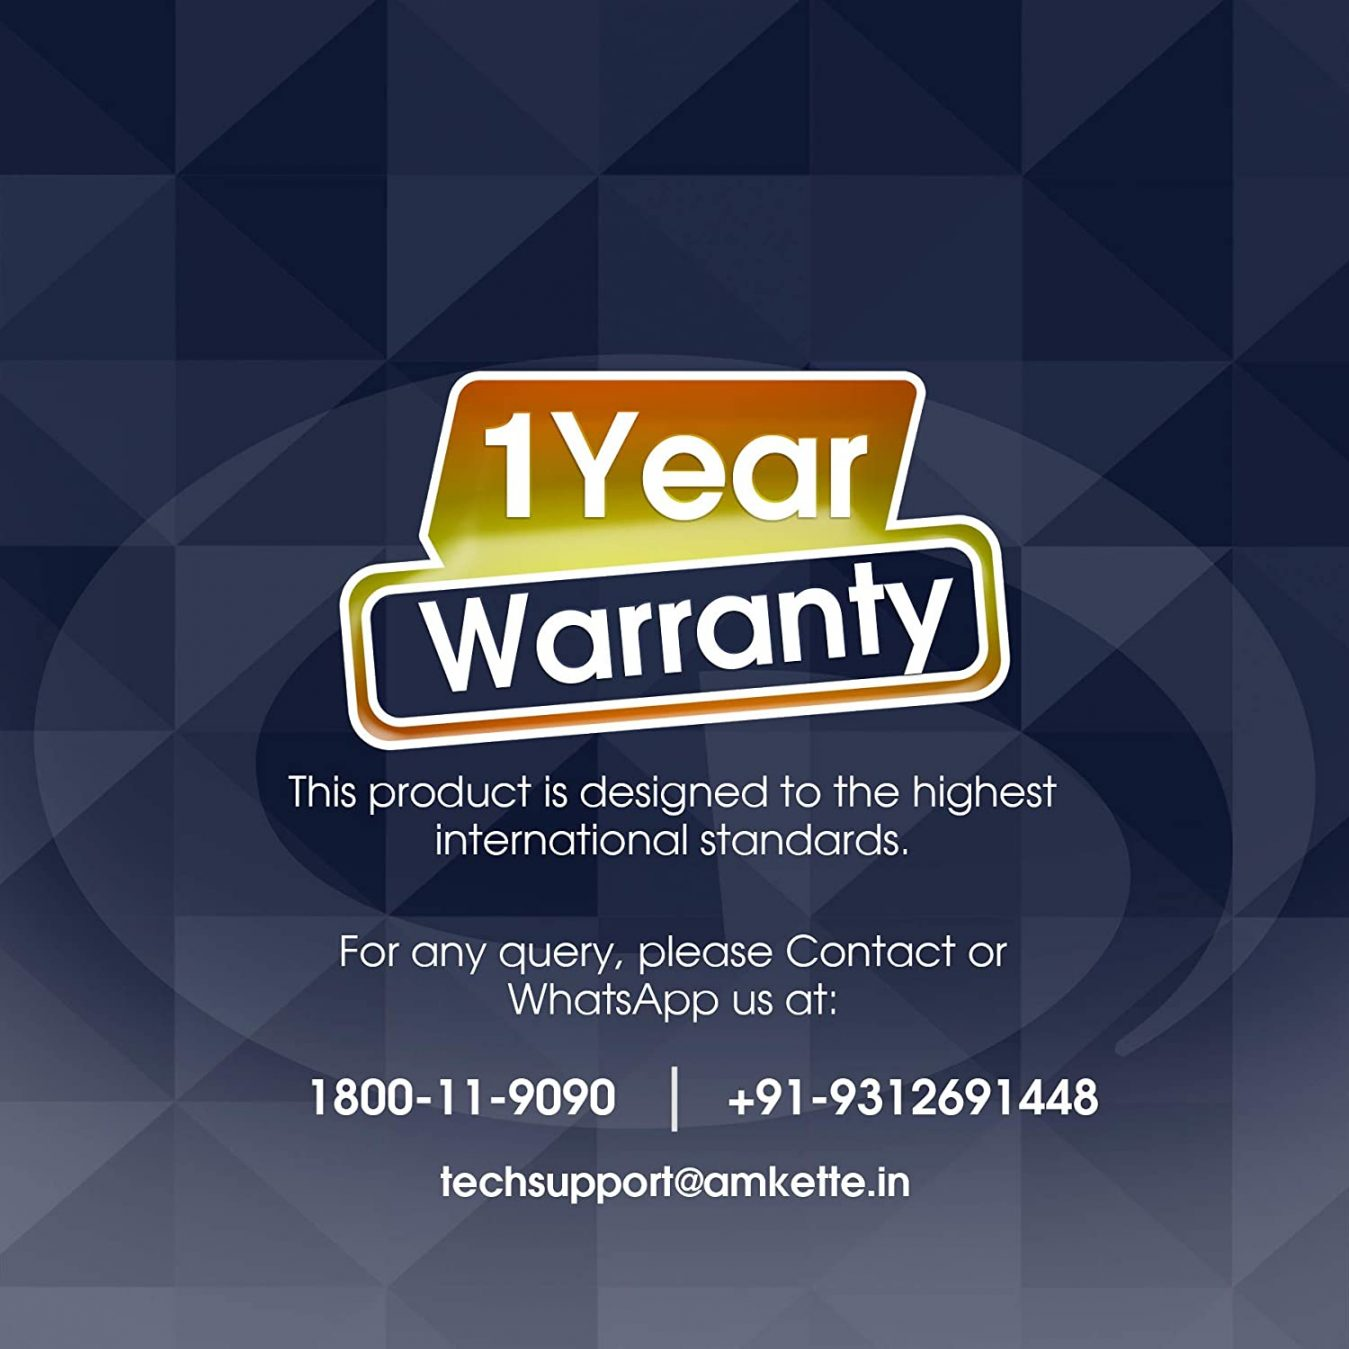 1 year warranty card by amkette